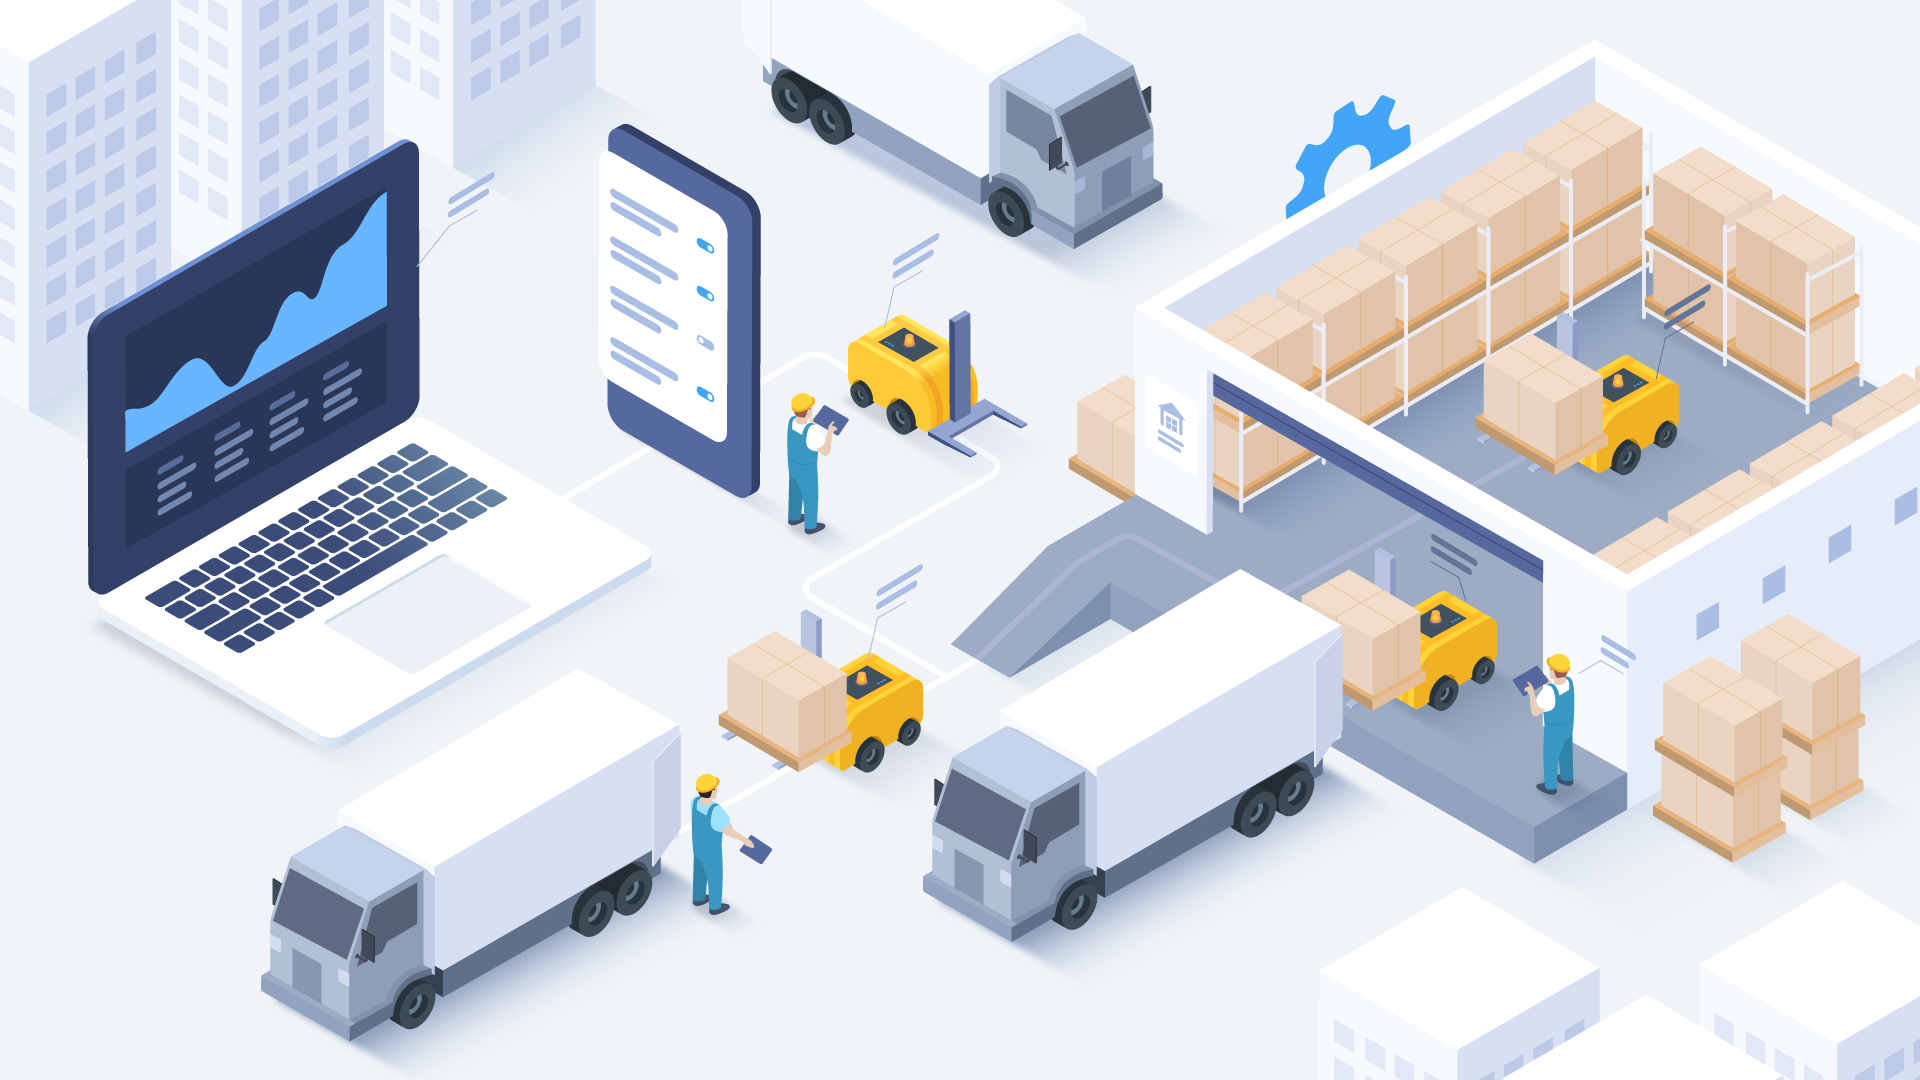 Five critical inventory management practices to apply in the warehouse